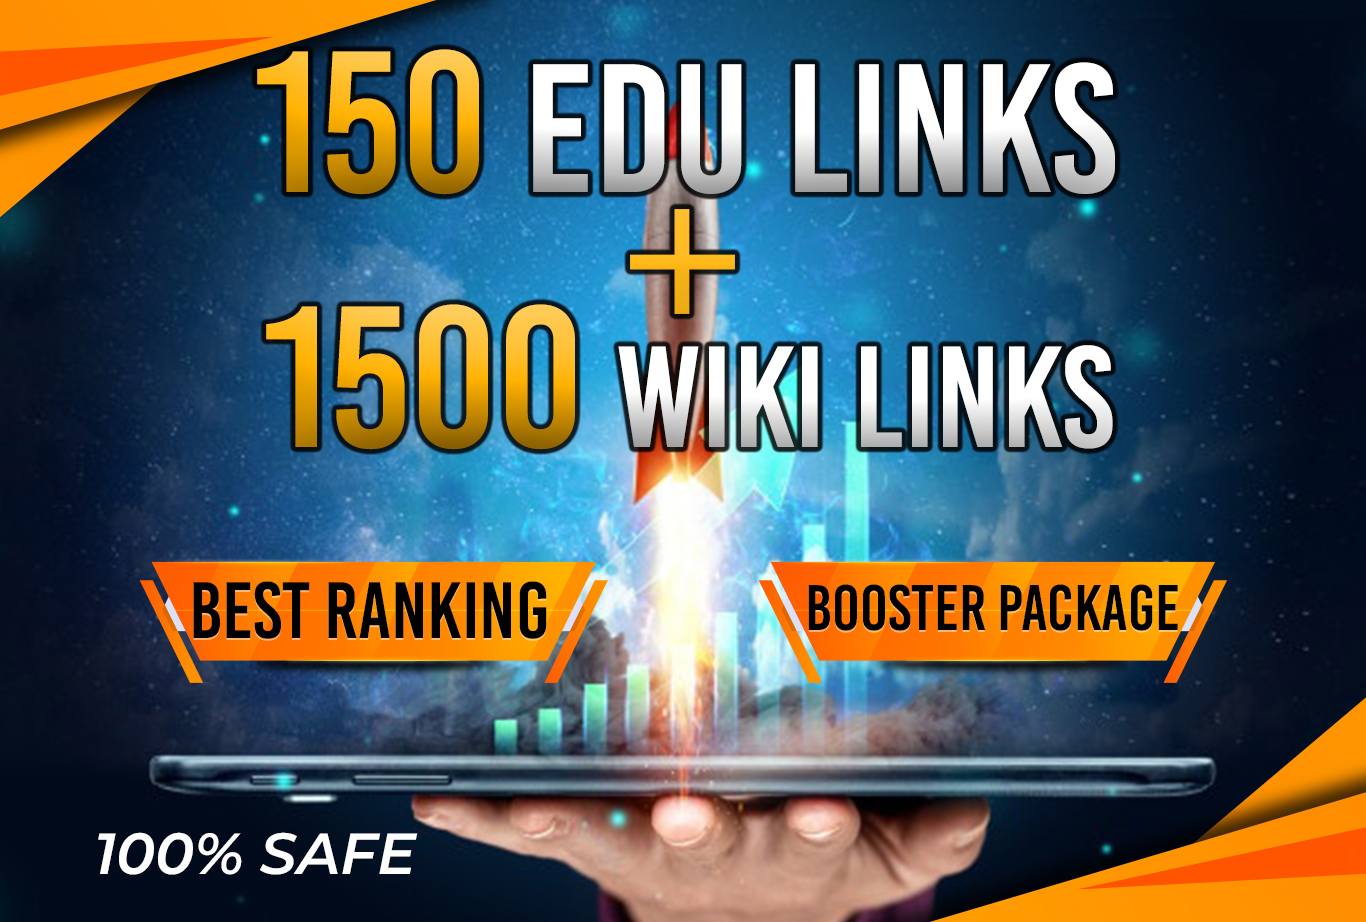 Trusted 150 EDU + 1500 WIKI link Best Ranking Package